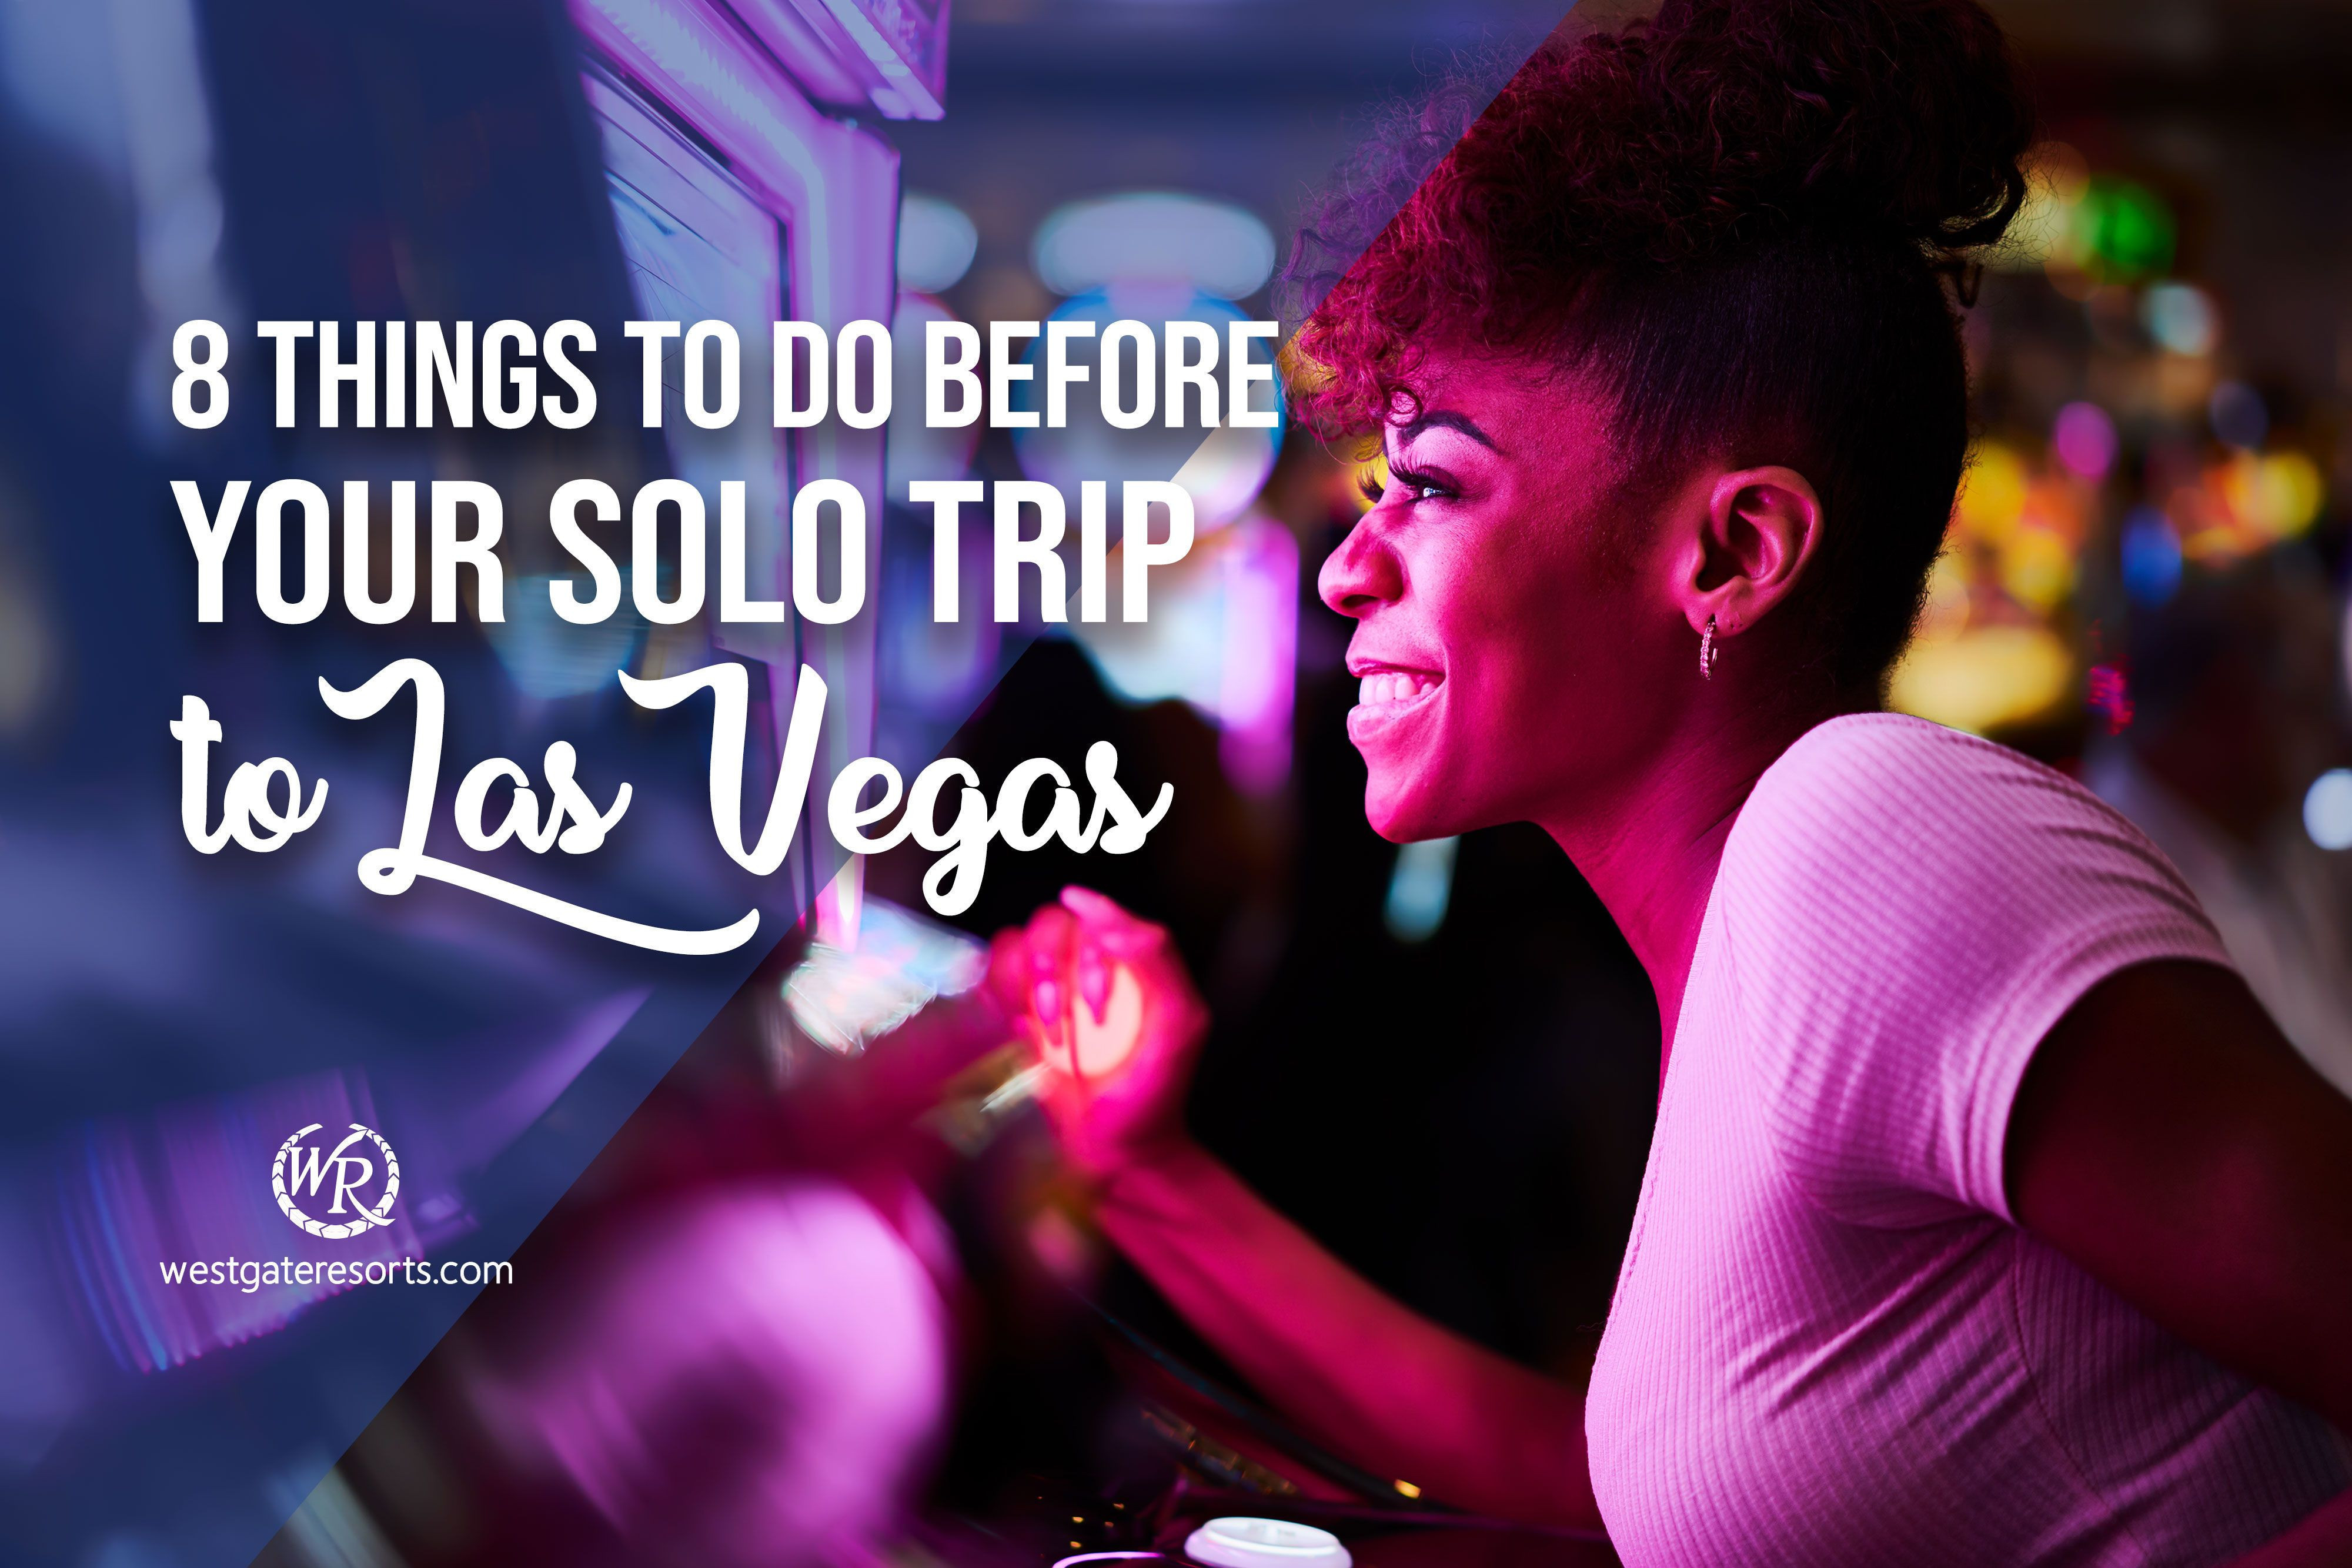 8 Things to Do Before Your Solo Trip to Las Vegas